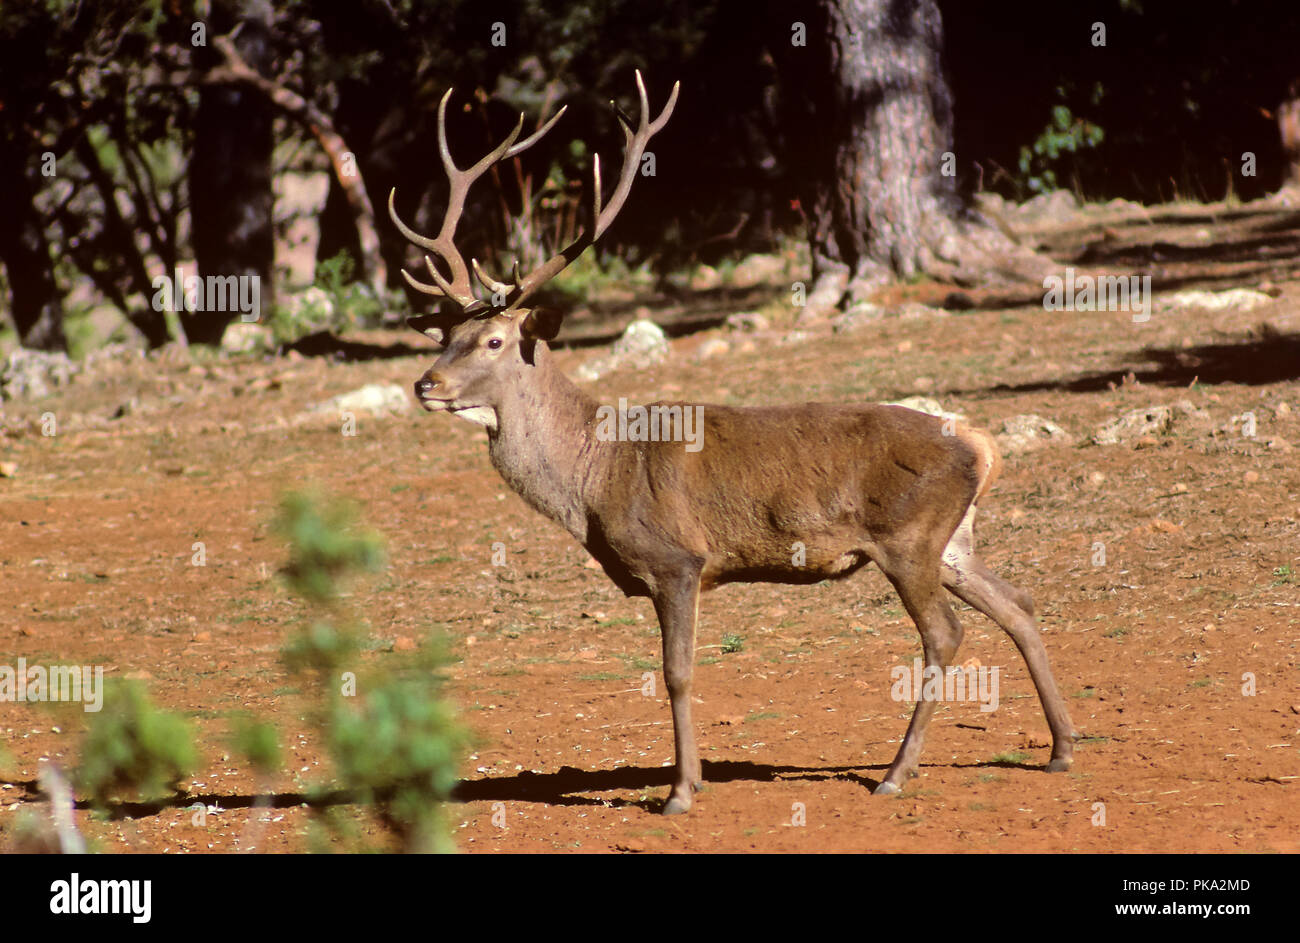 A Red deer. Sierras de Cazorla, Segura y Las Villas Natural Park. Jaen province. Region of Andalusia. Spain. Europe - Stock Image